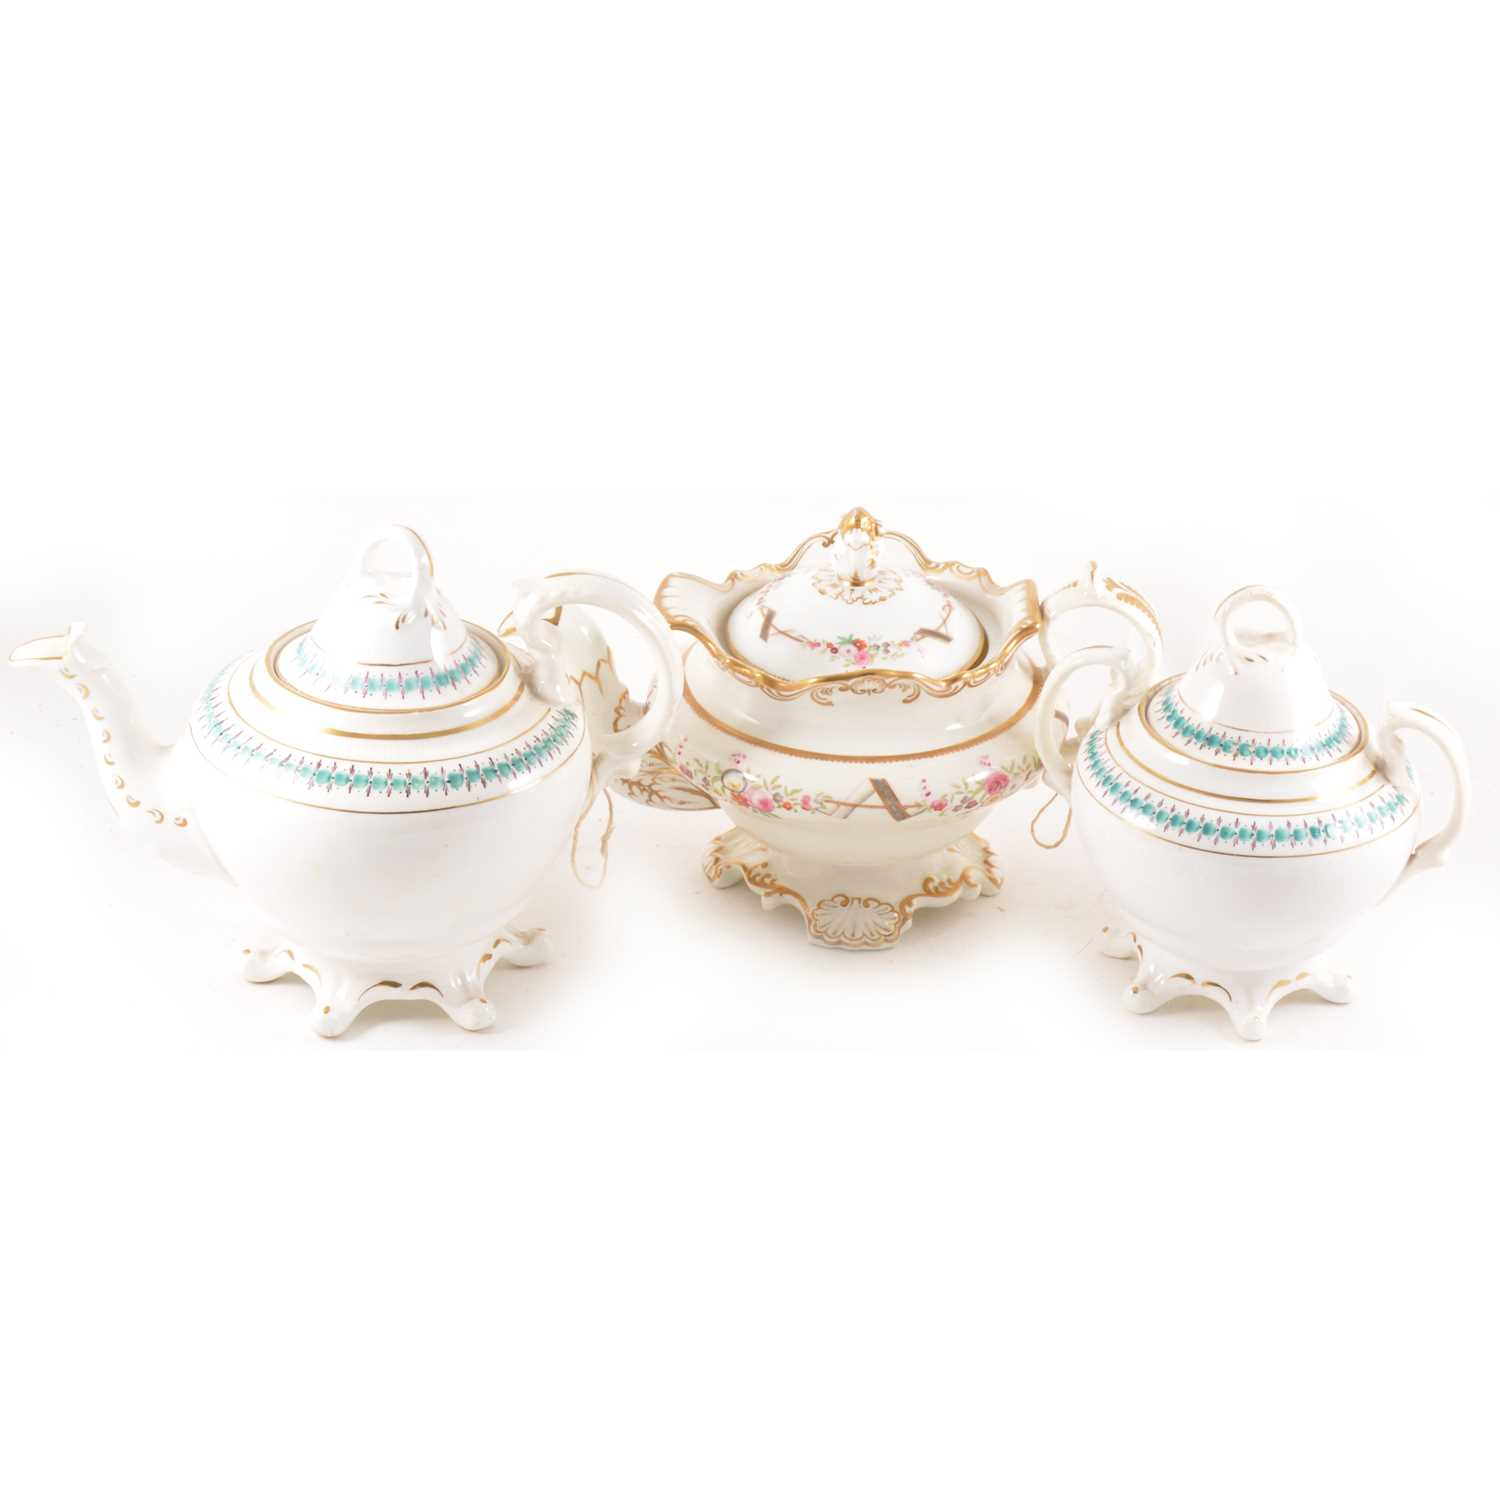 Lot 56 - A Victorian bone china comport and other Victorian pottery